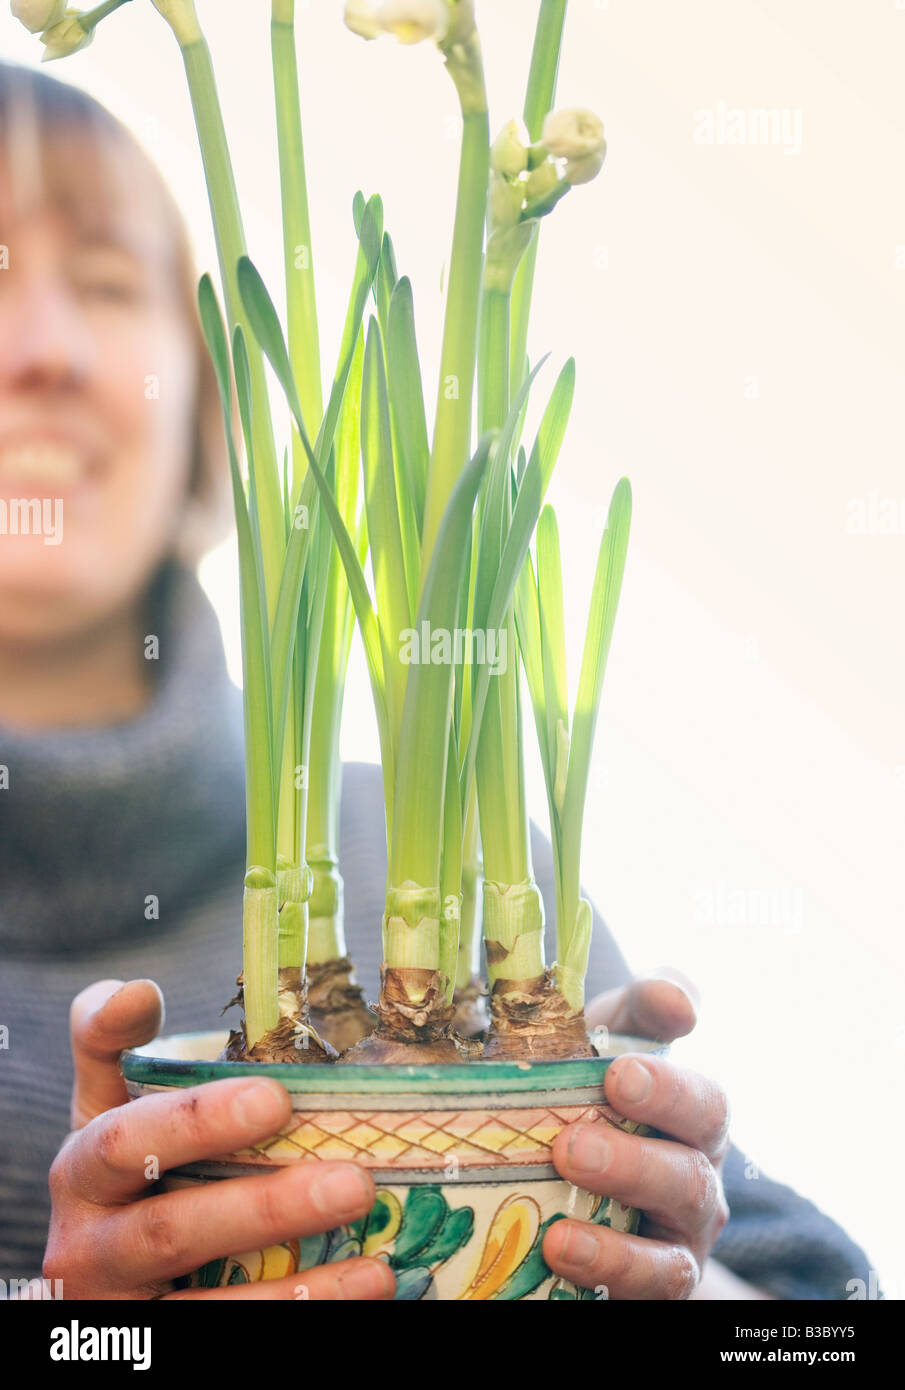 A woman holding a pot of daffodils - Stock Image